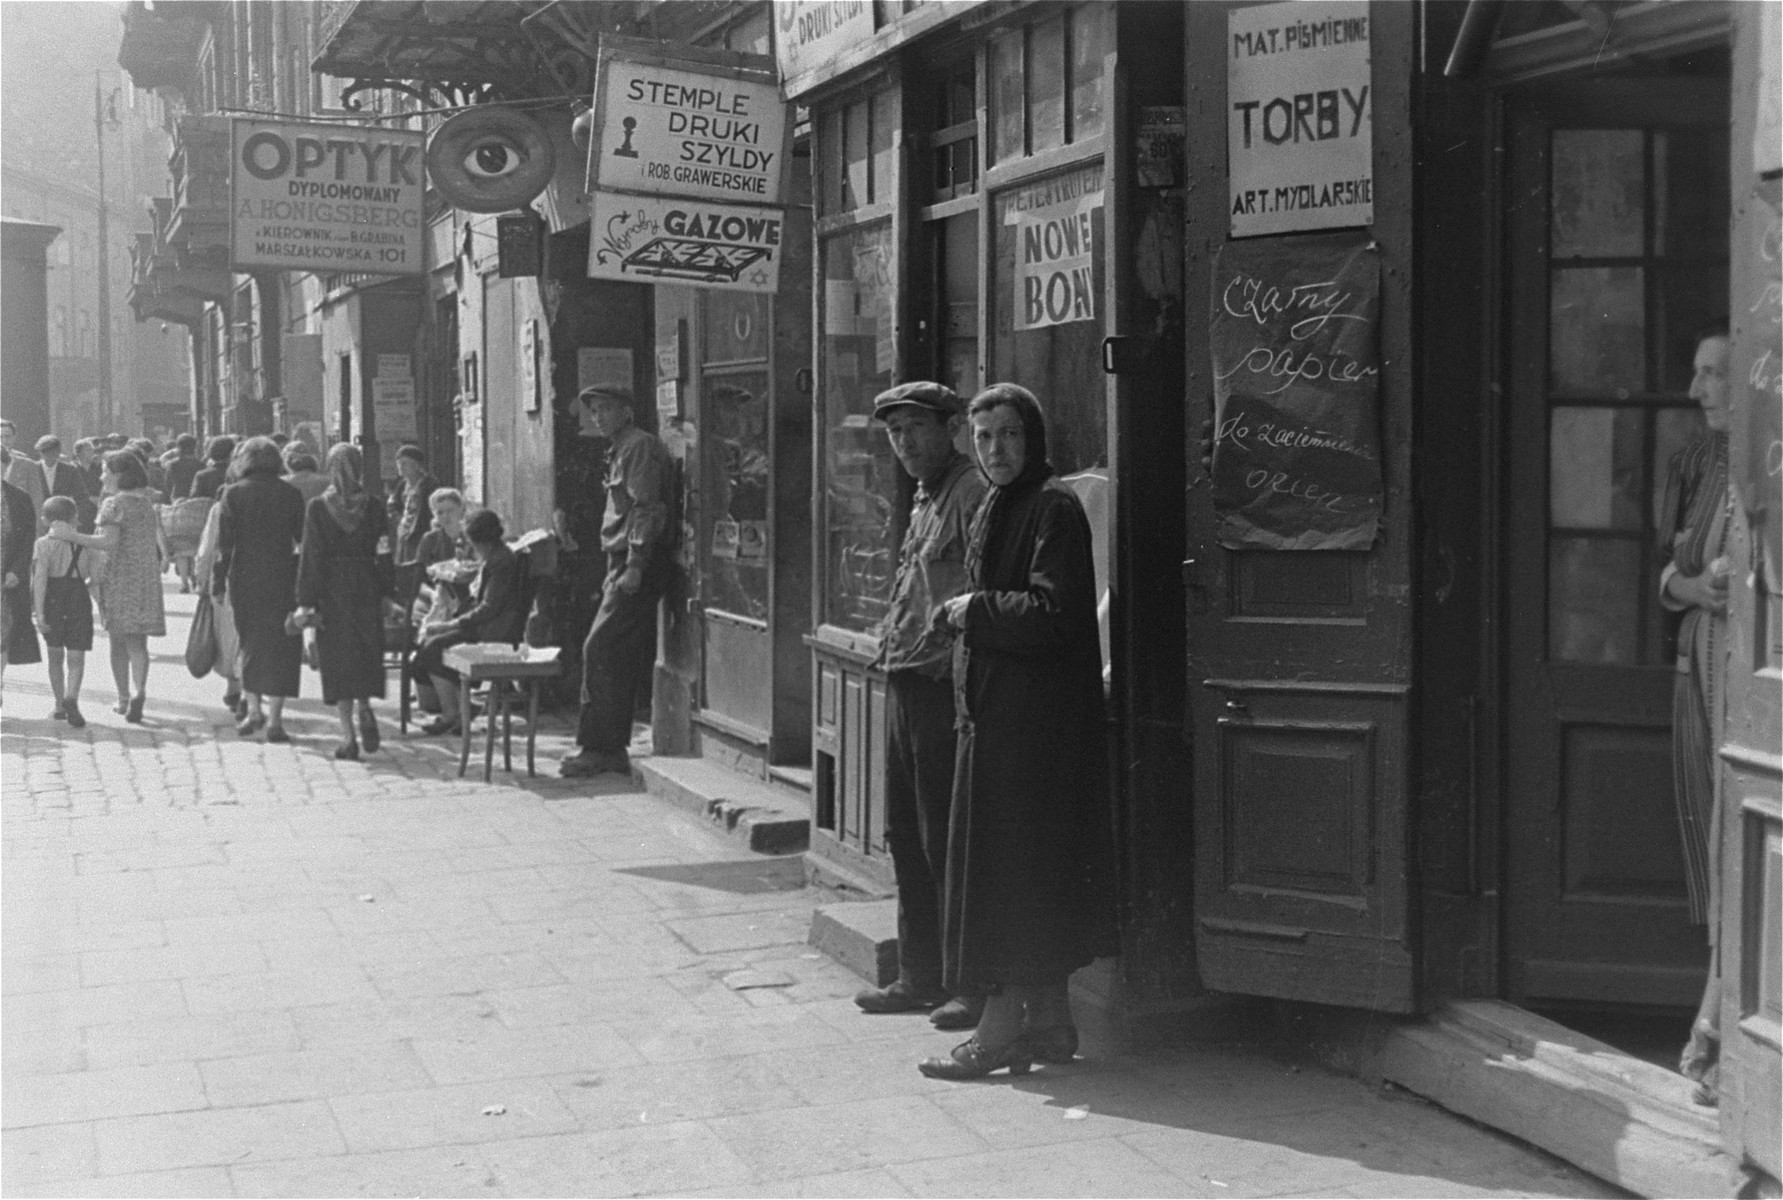 View of a commercial street in the Warsaw ghetto   The store at right sells black paper for covering windows, as well as soap and writing materials.